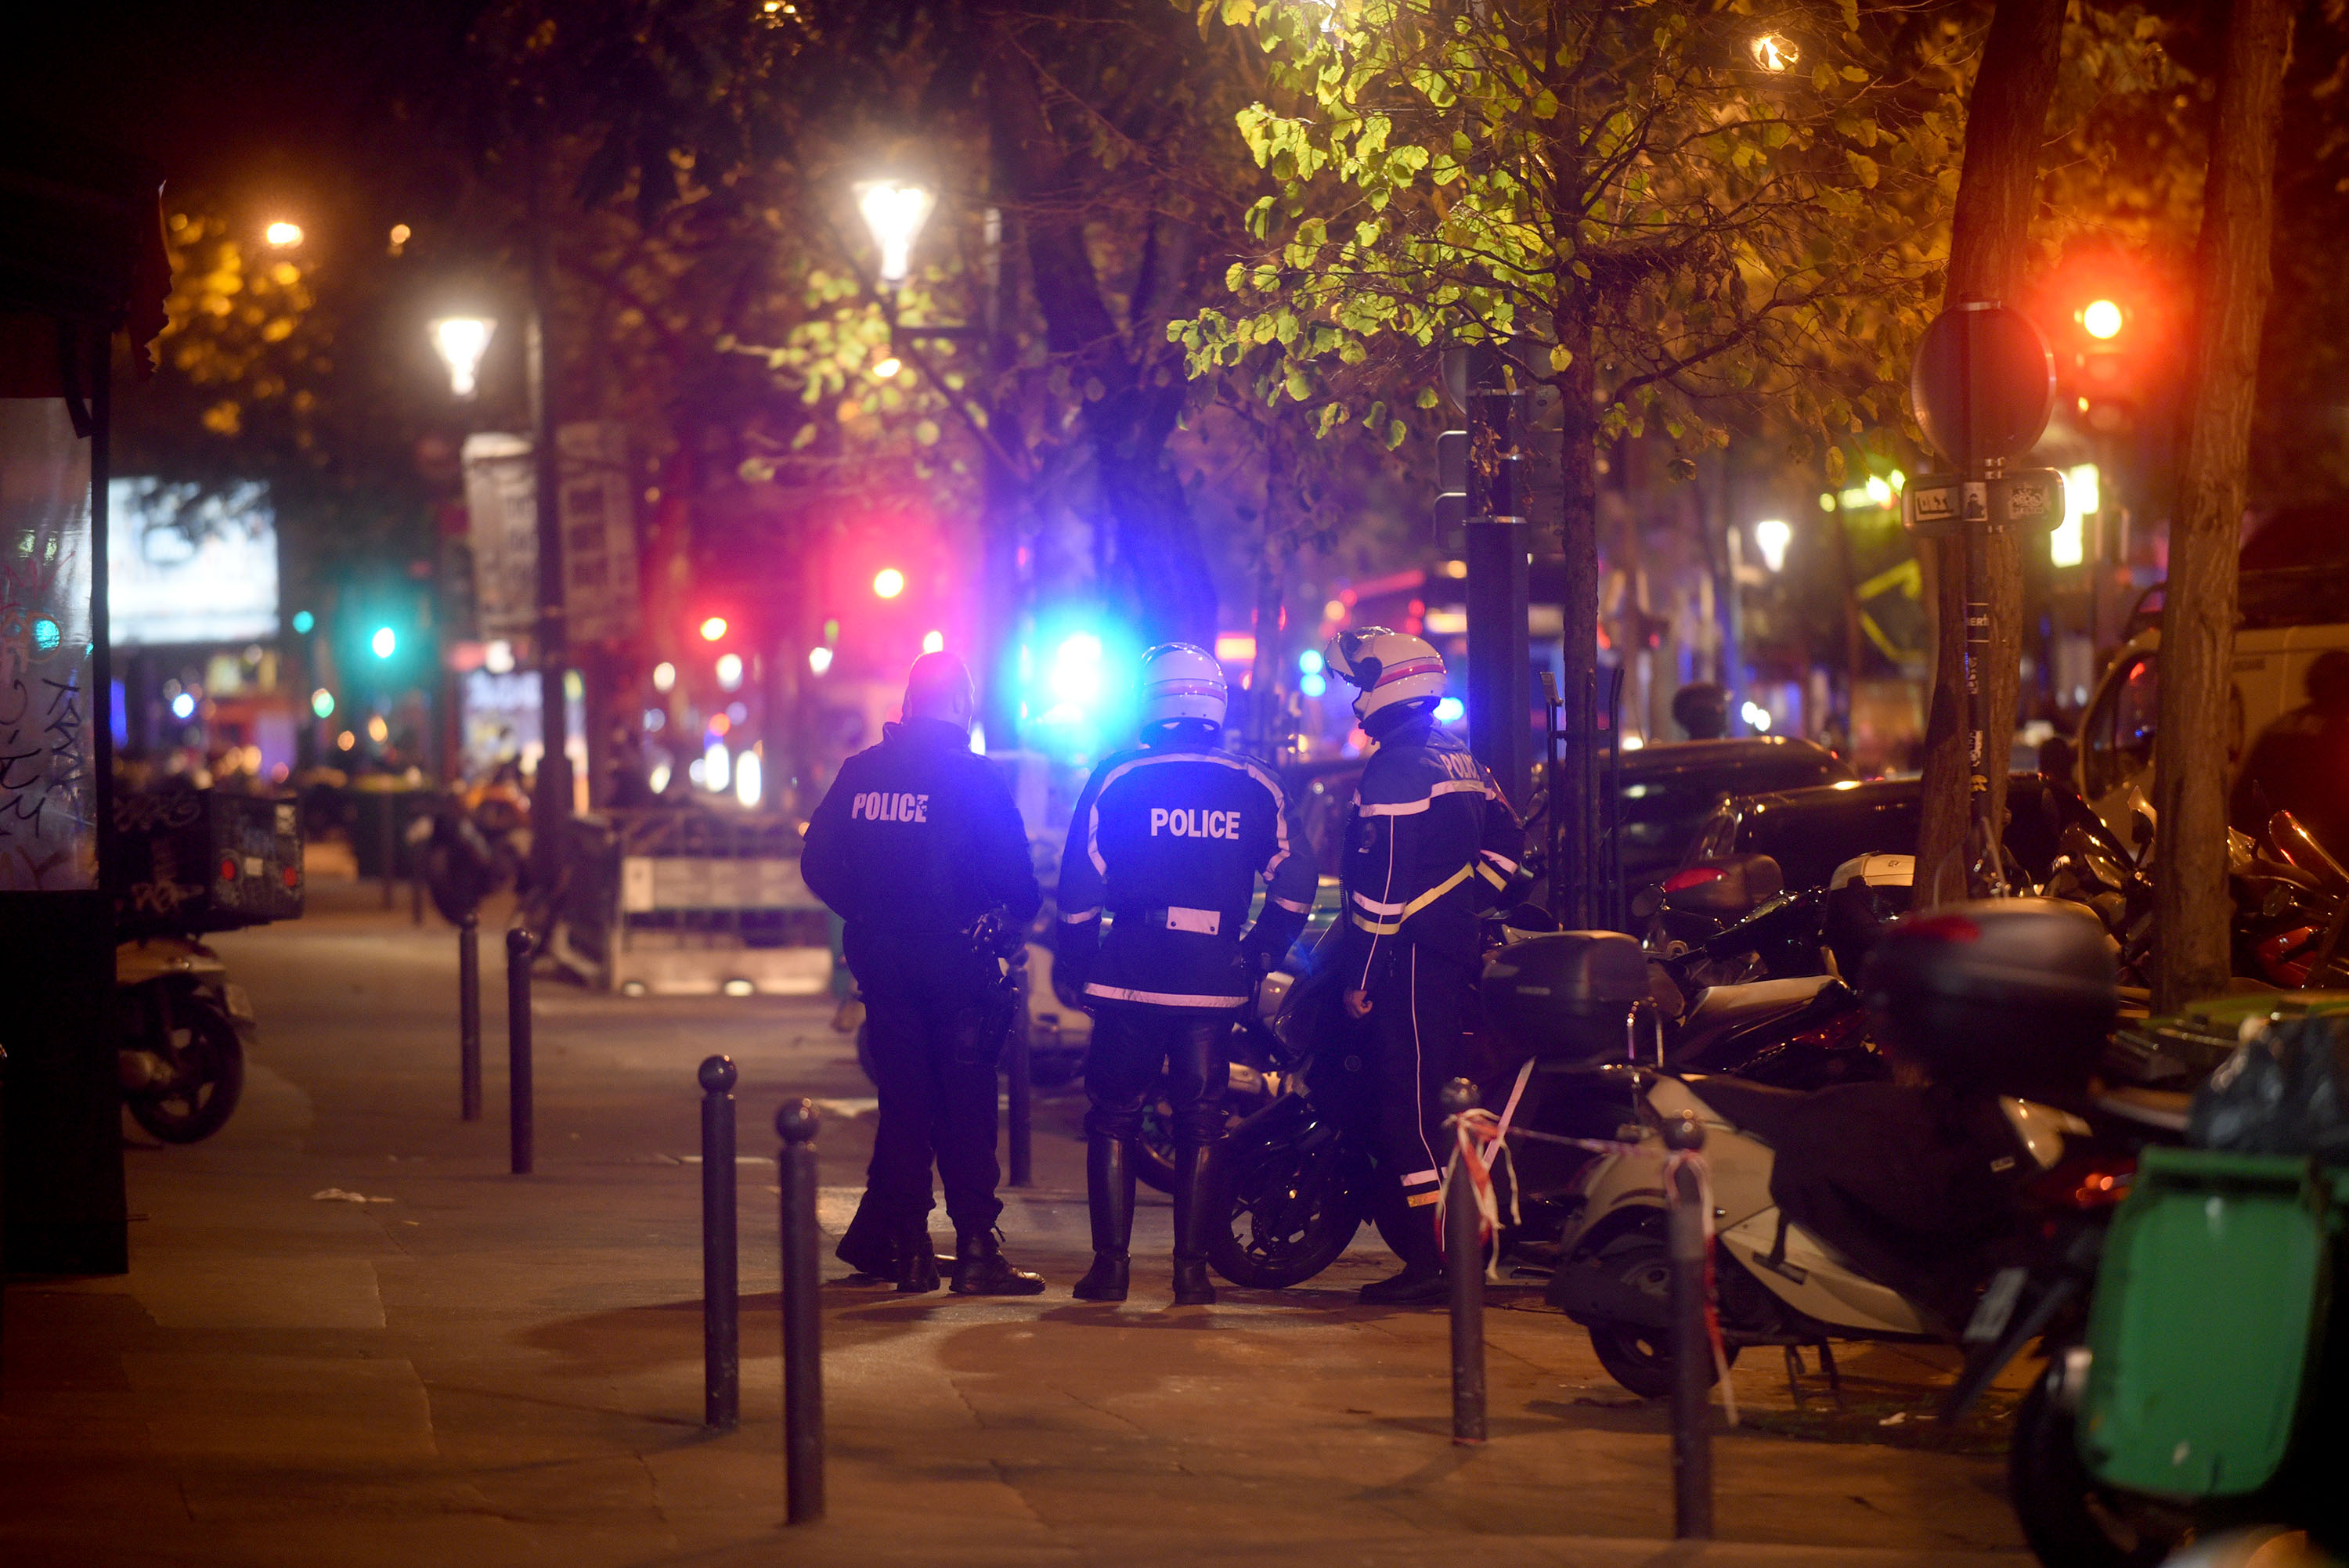 Policemen patrol the streets during gunfire near the Bataclan concert hall. (Getty)